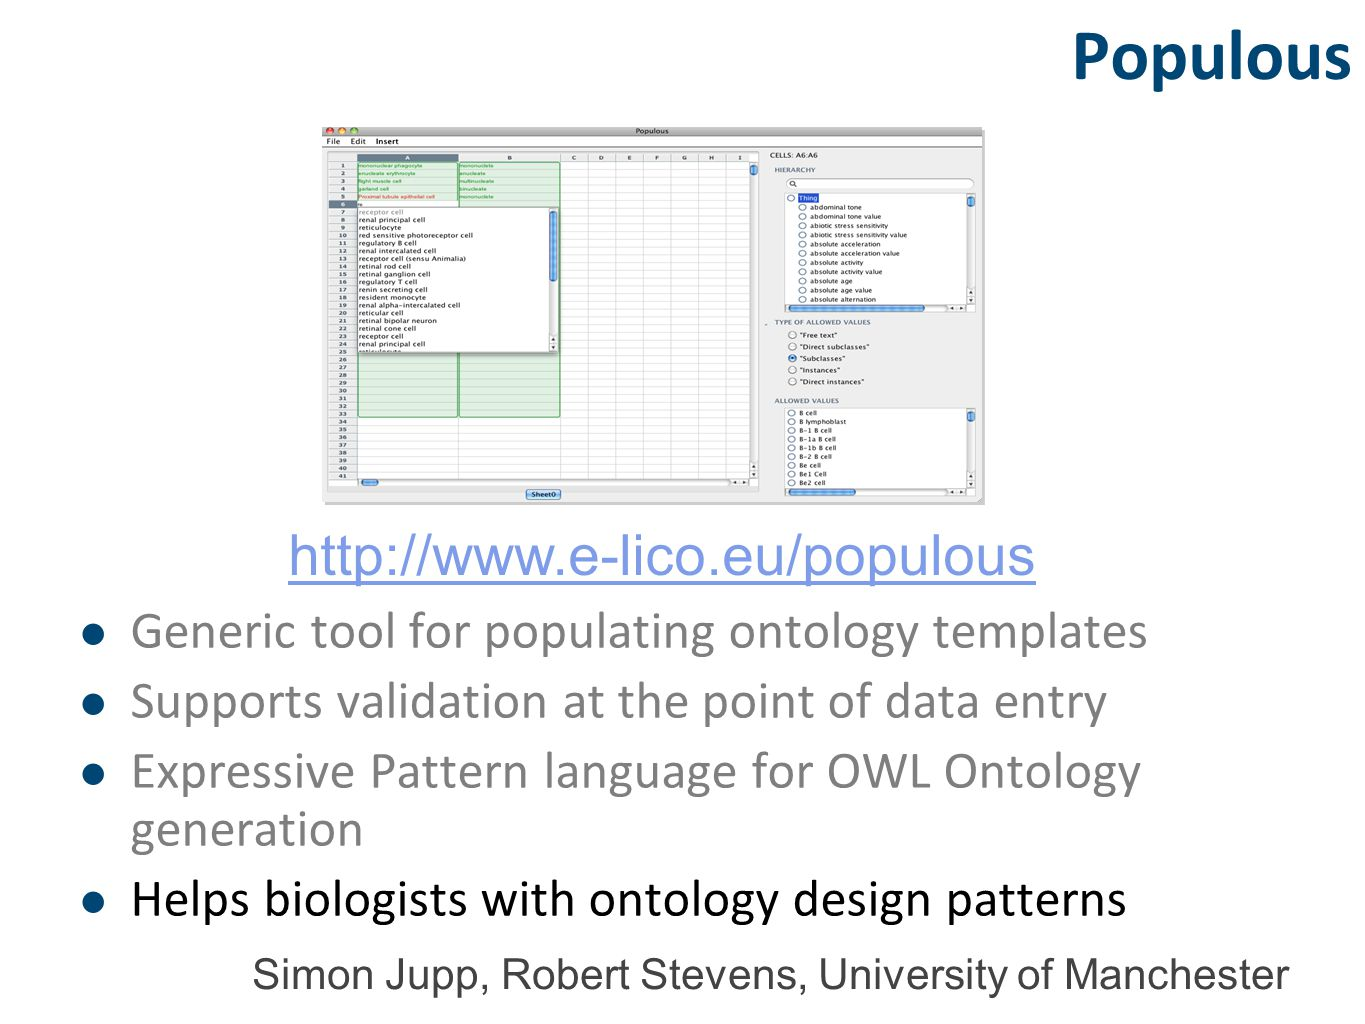 Populous Generic tool for populating ontology templates Supports validation at the point of data entry Expressive Pattern language for OWL Ontology generation Helps biologists with ontology design patterns http://www.e-lico.eu/populous Simon Jupp, Robert Stevens, University of Manchester